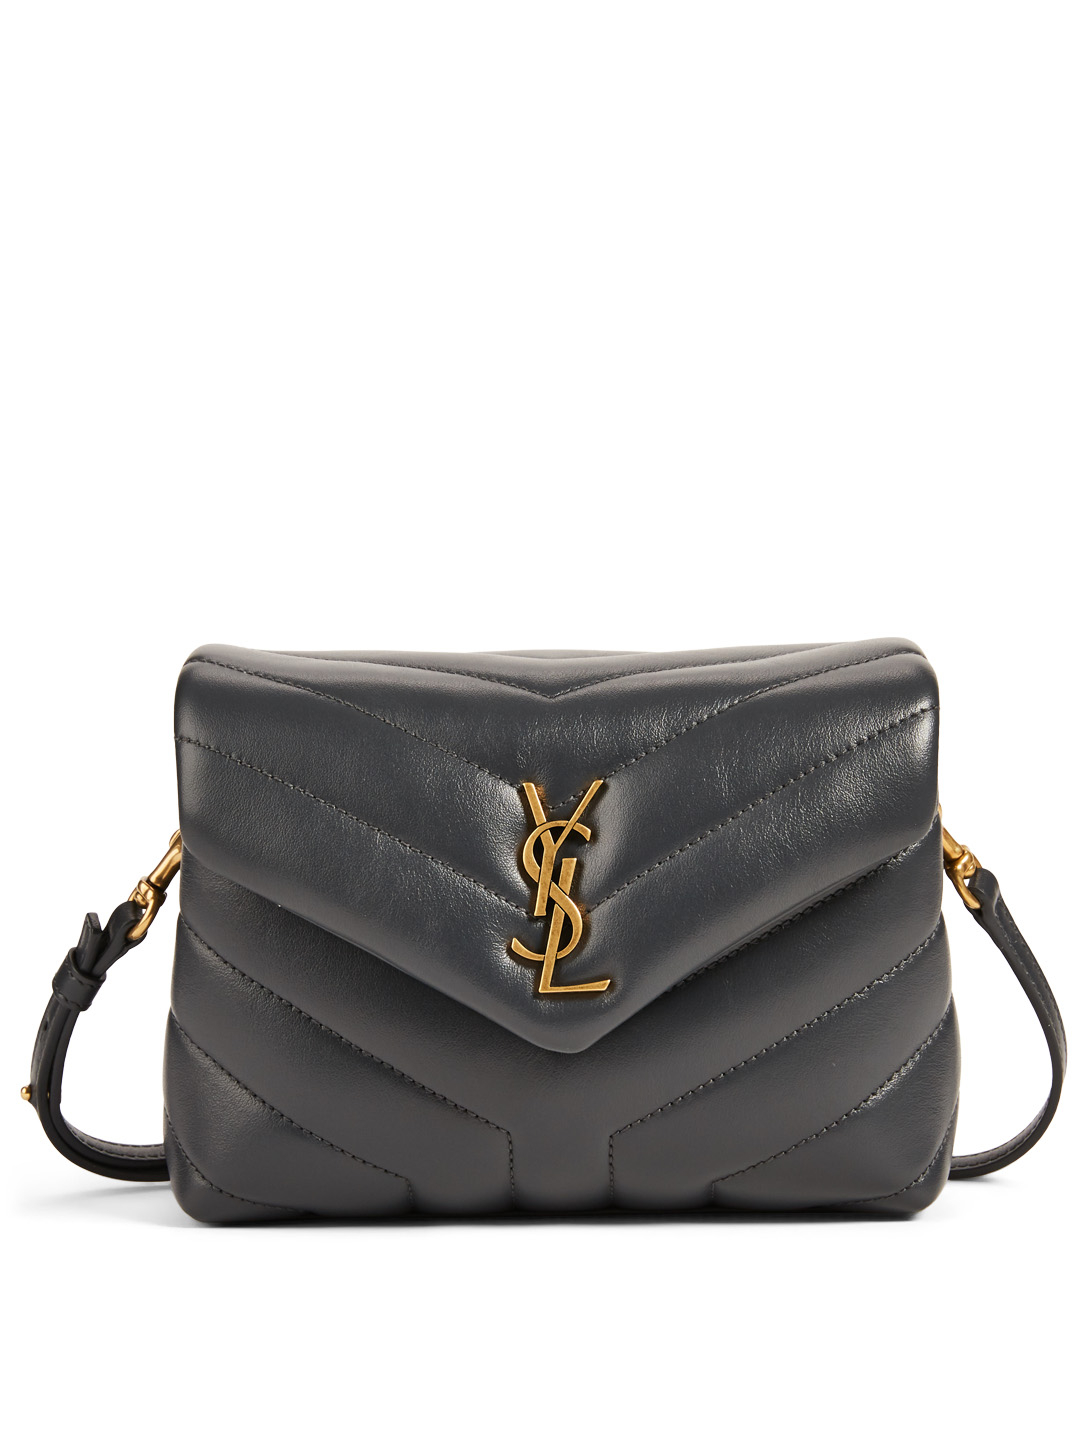 SAINT LAURENT Toy Loulou YSL Monogram Leather Crossbody Bag Women's Grey